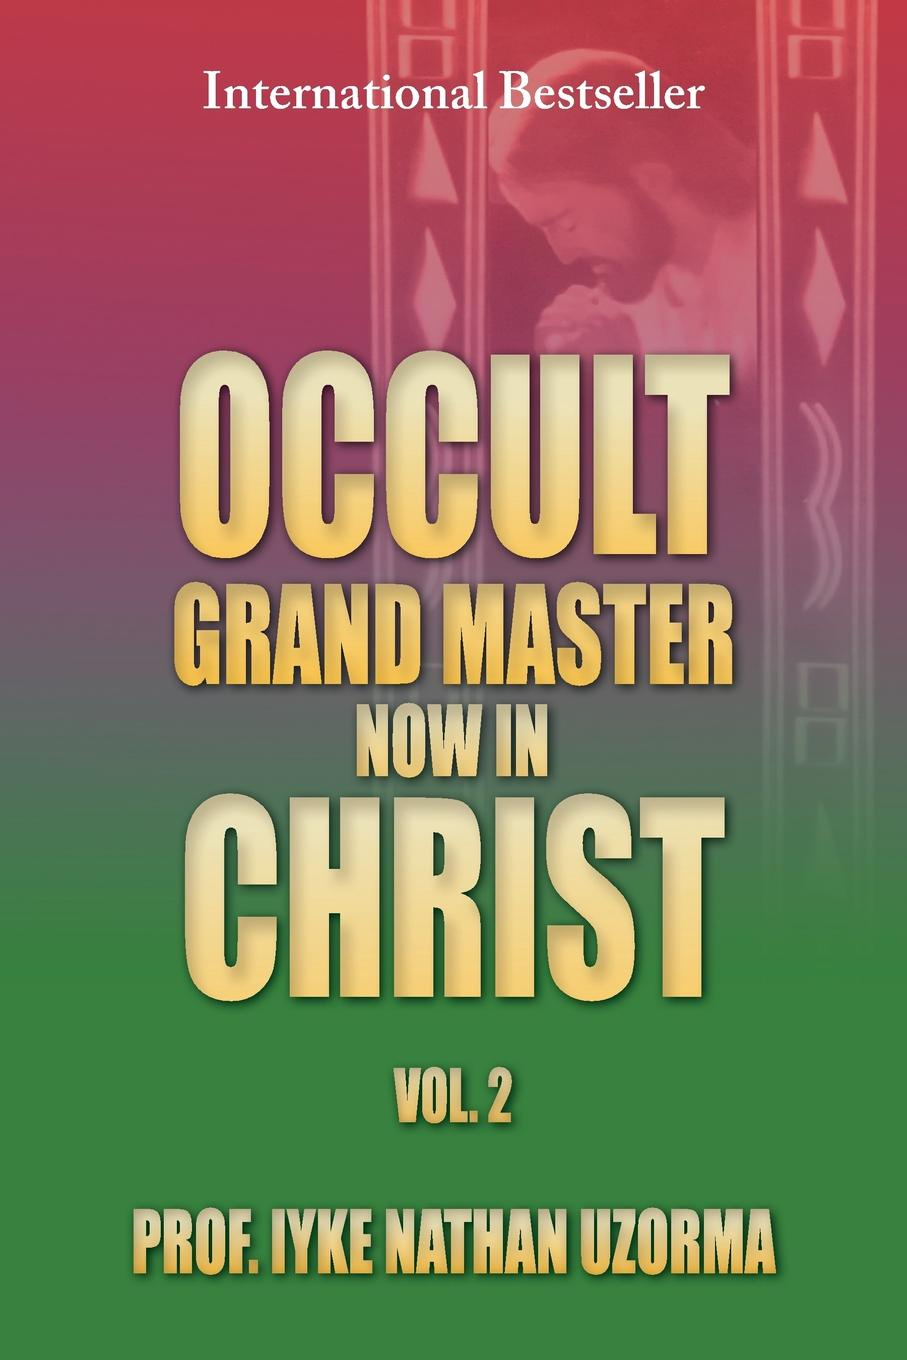 Prof Iyke Nathan Uzorma Occult Grand Master Now in Christ Vol. 2. 2